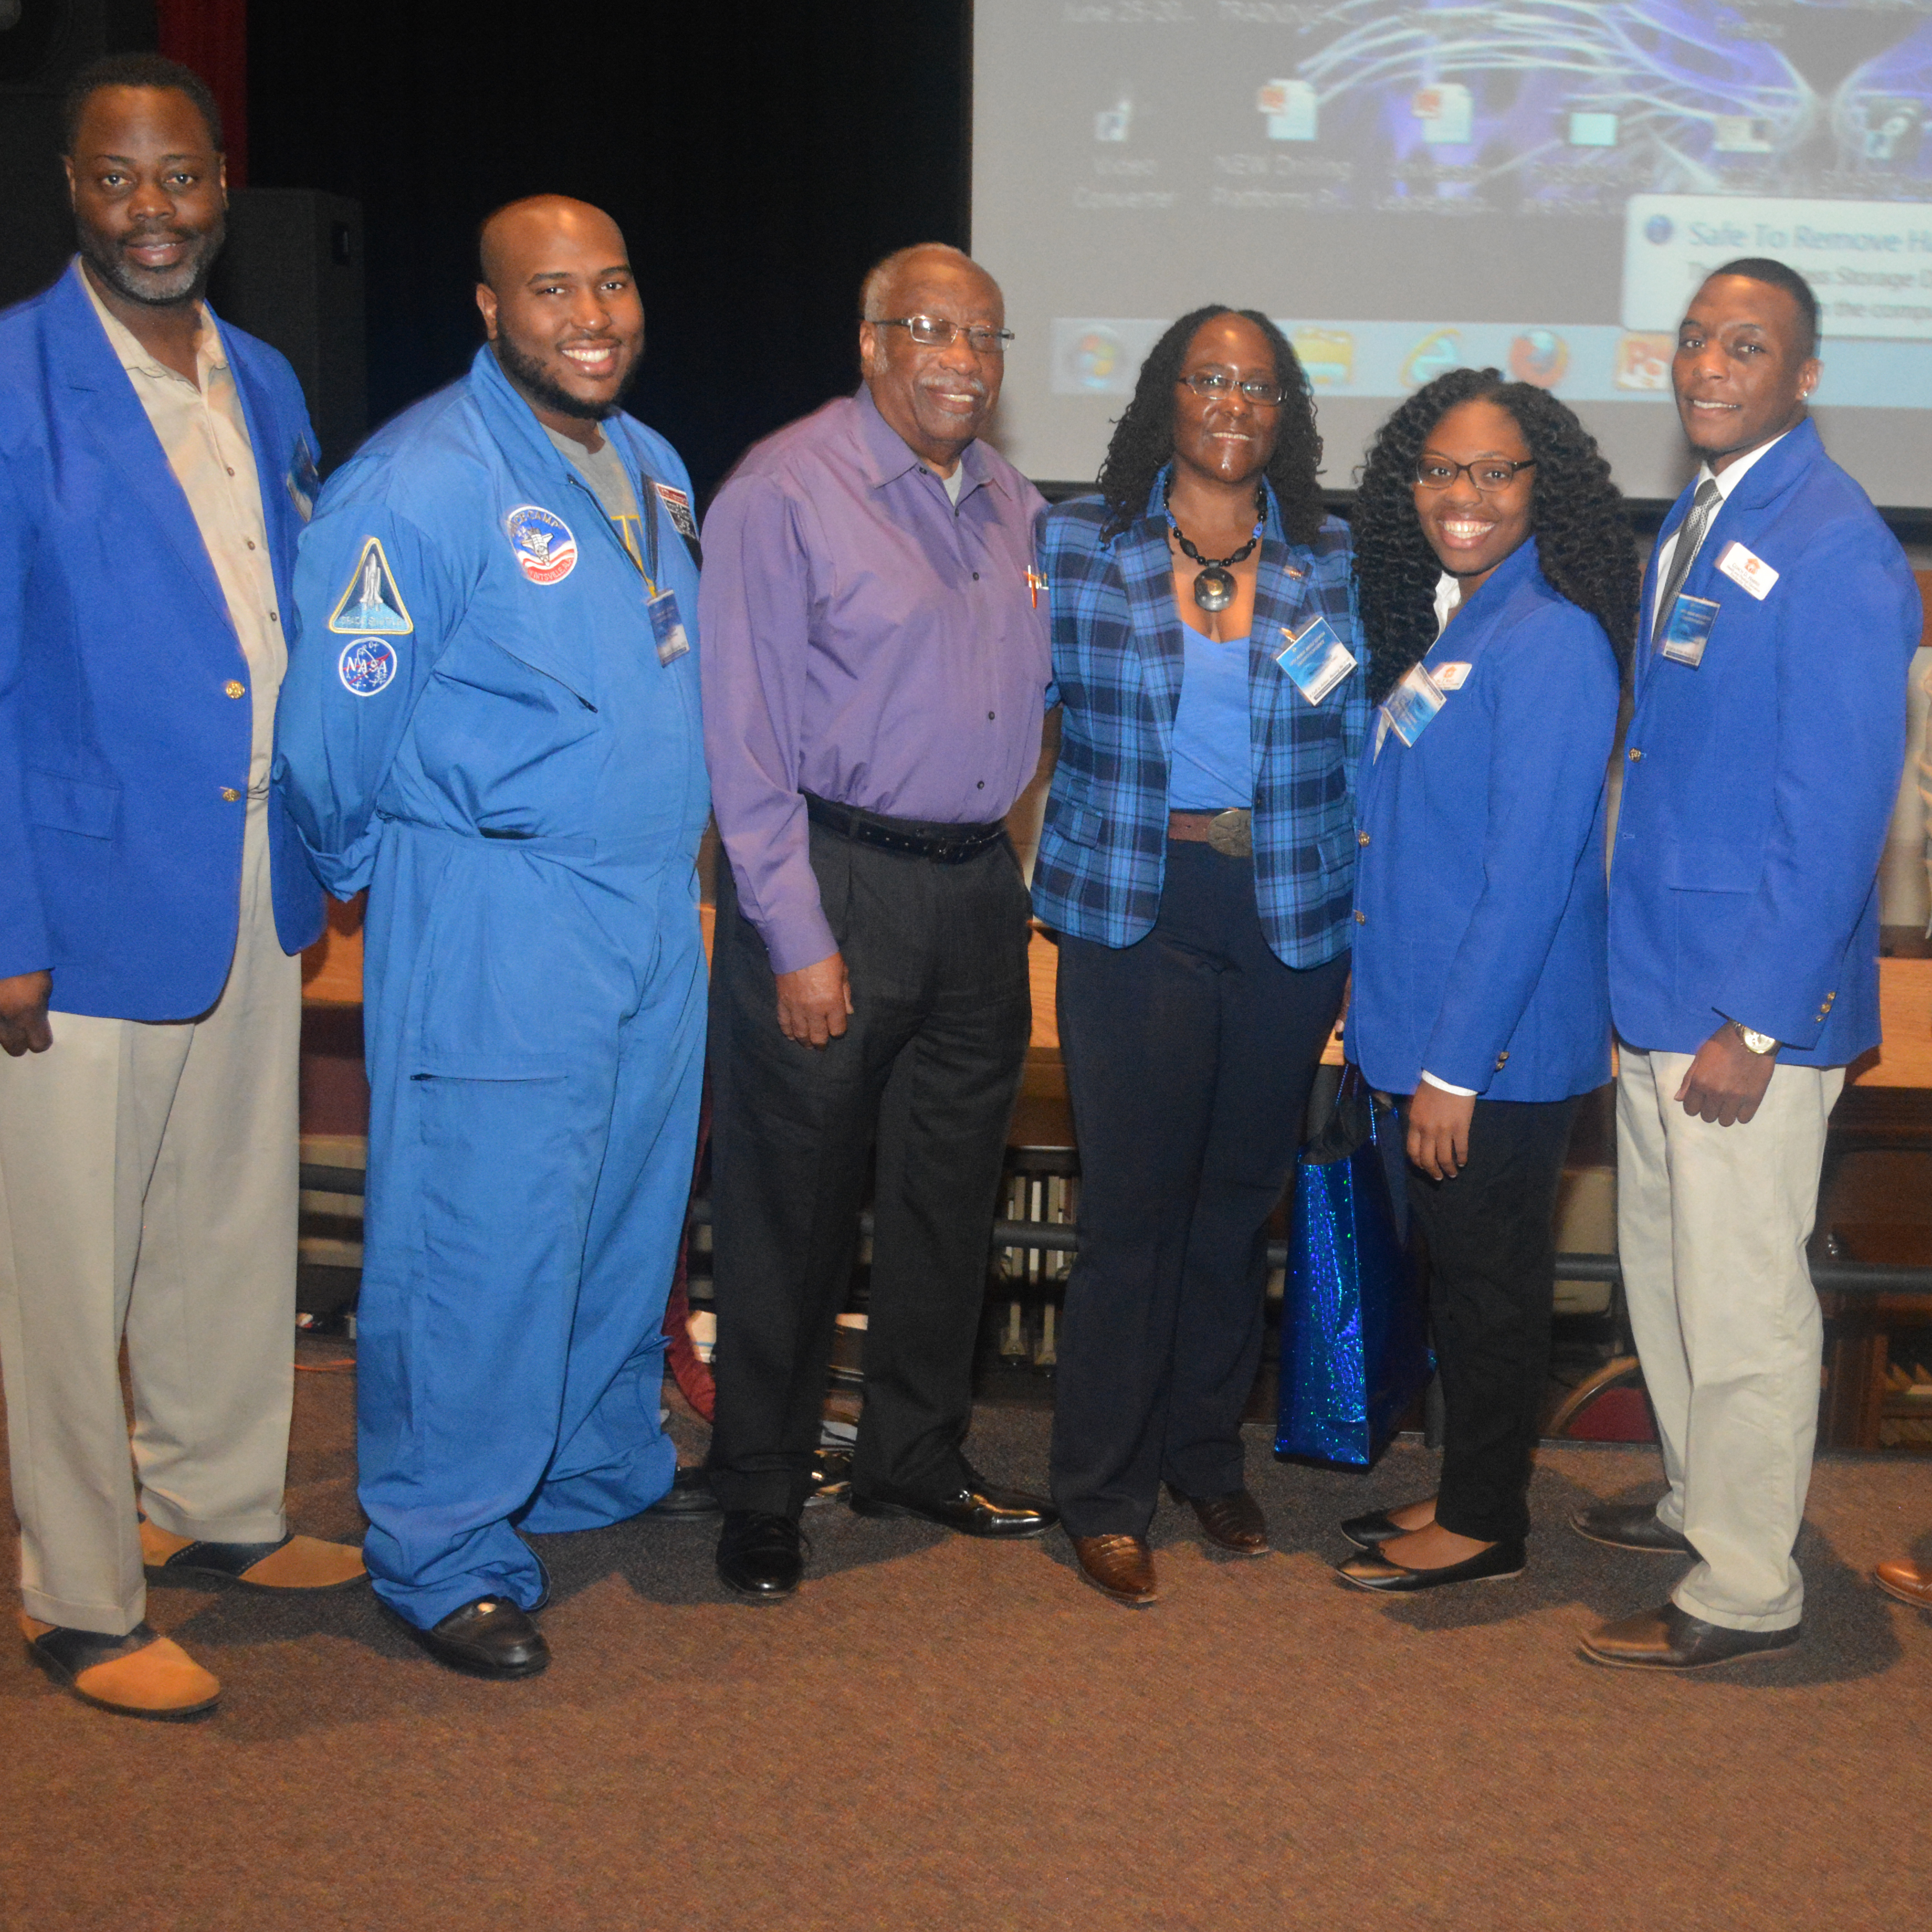 FVSU and GCSU host 5th Annual Diversity Conference